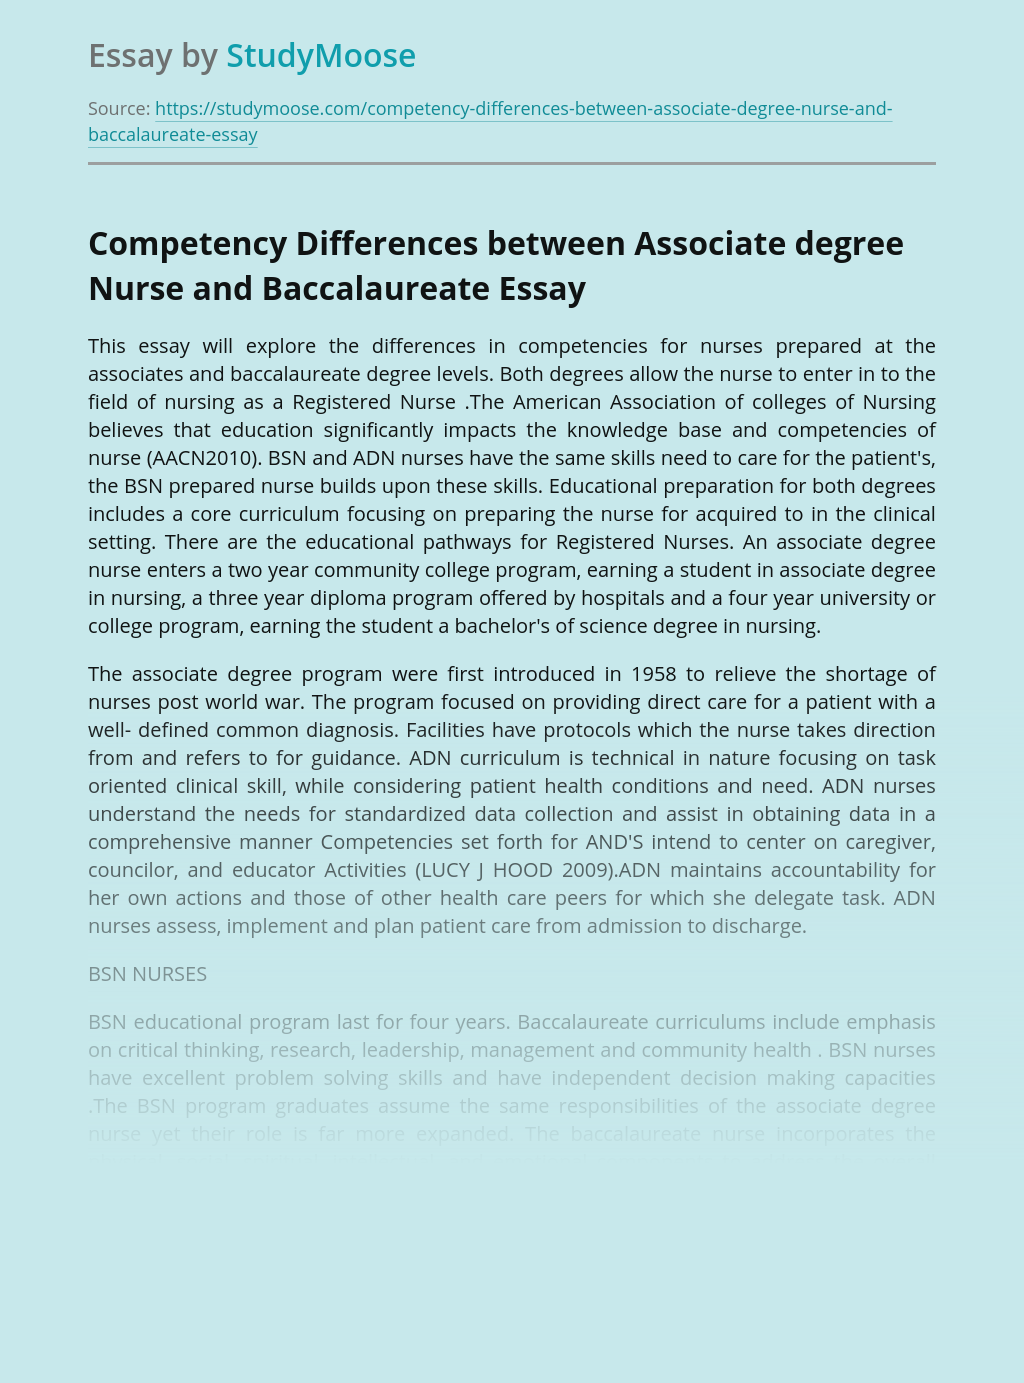 Competency Differences Between Associate Degree Nurse and Baccalaureate